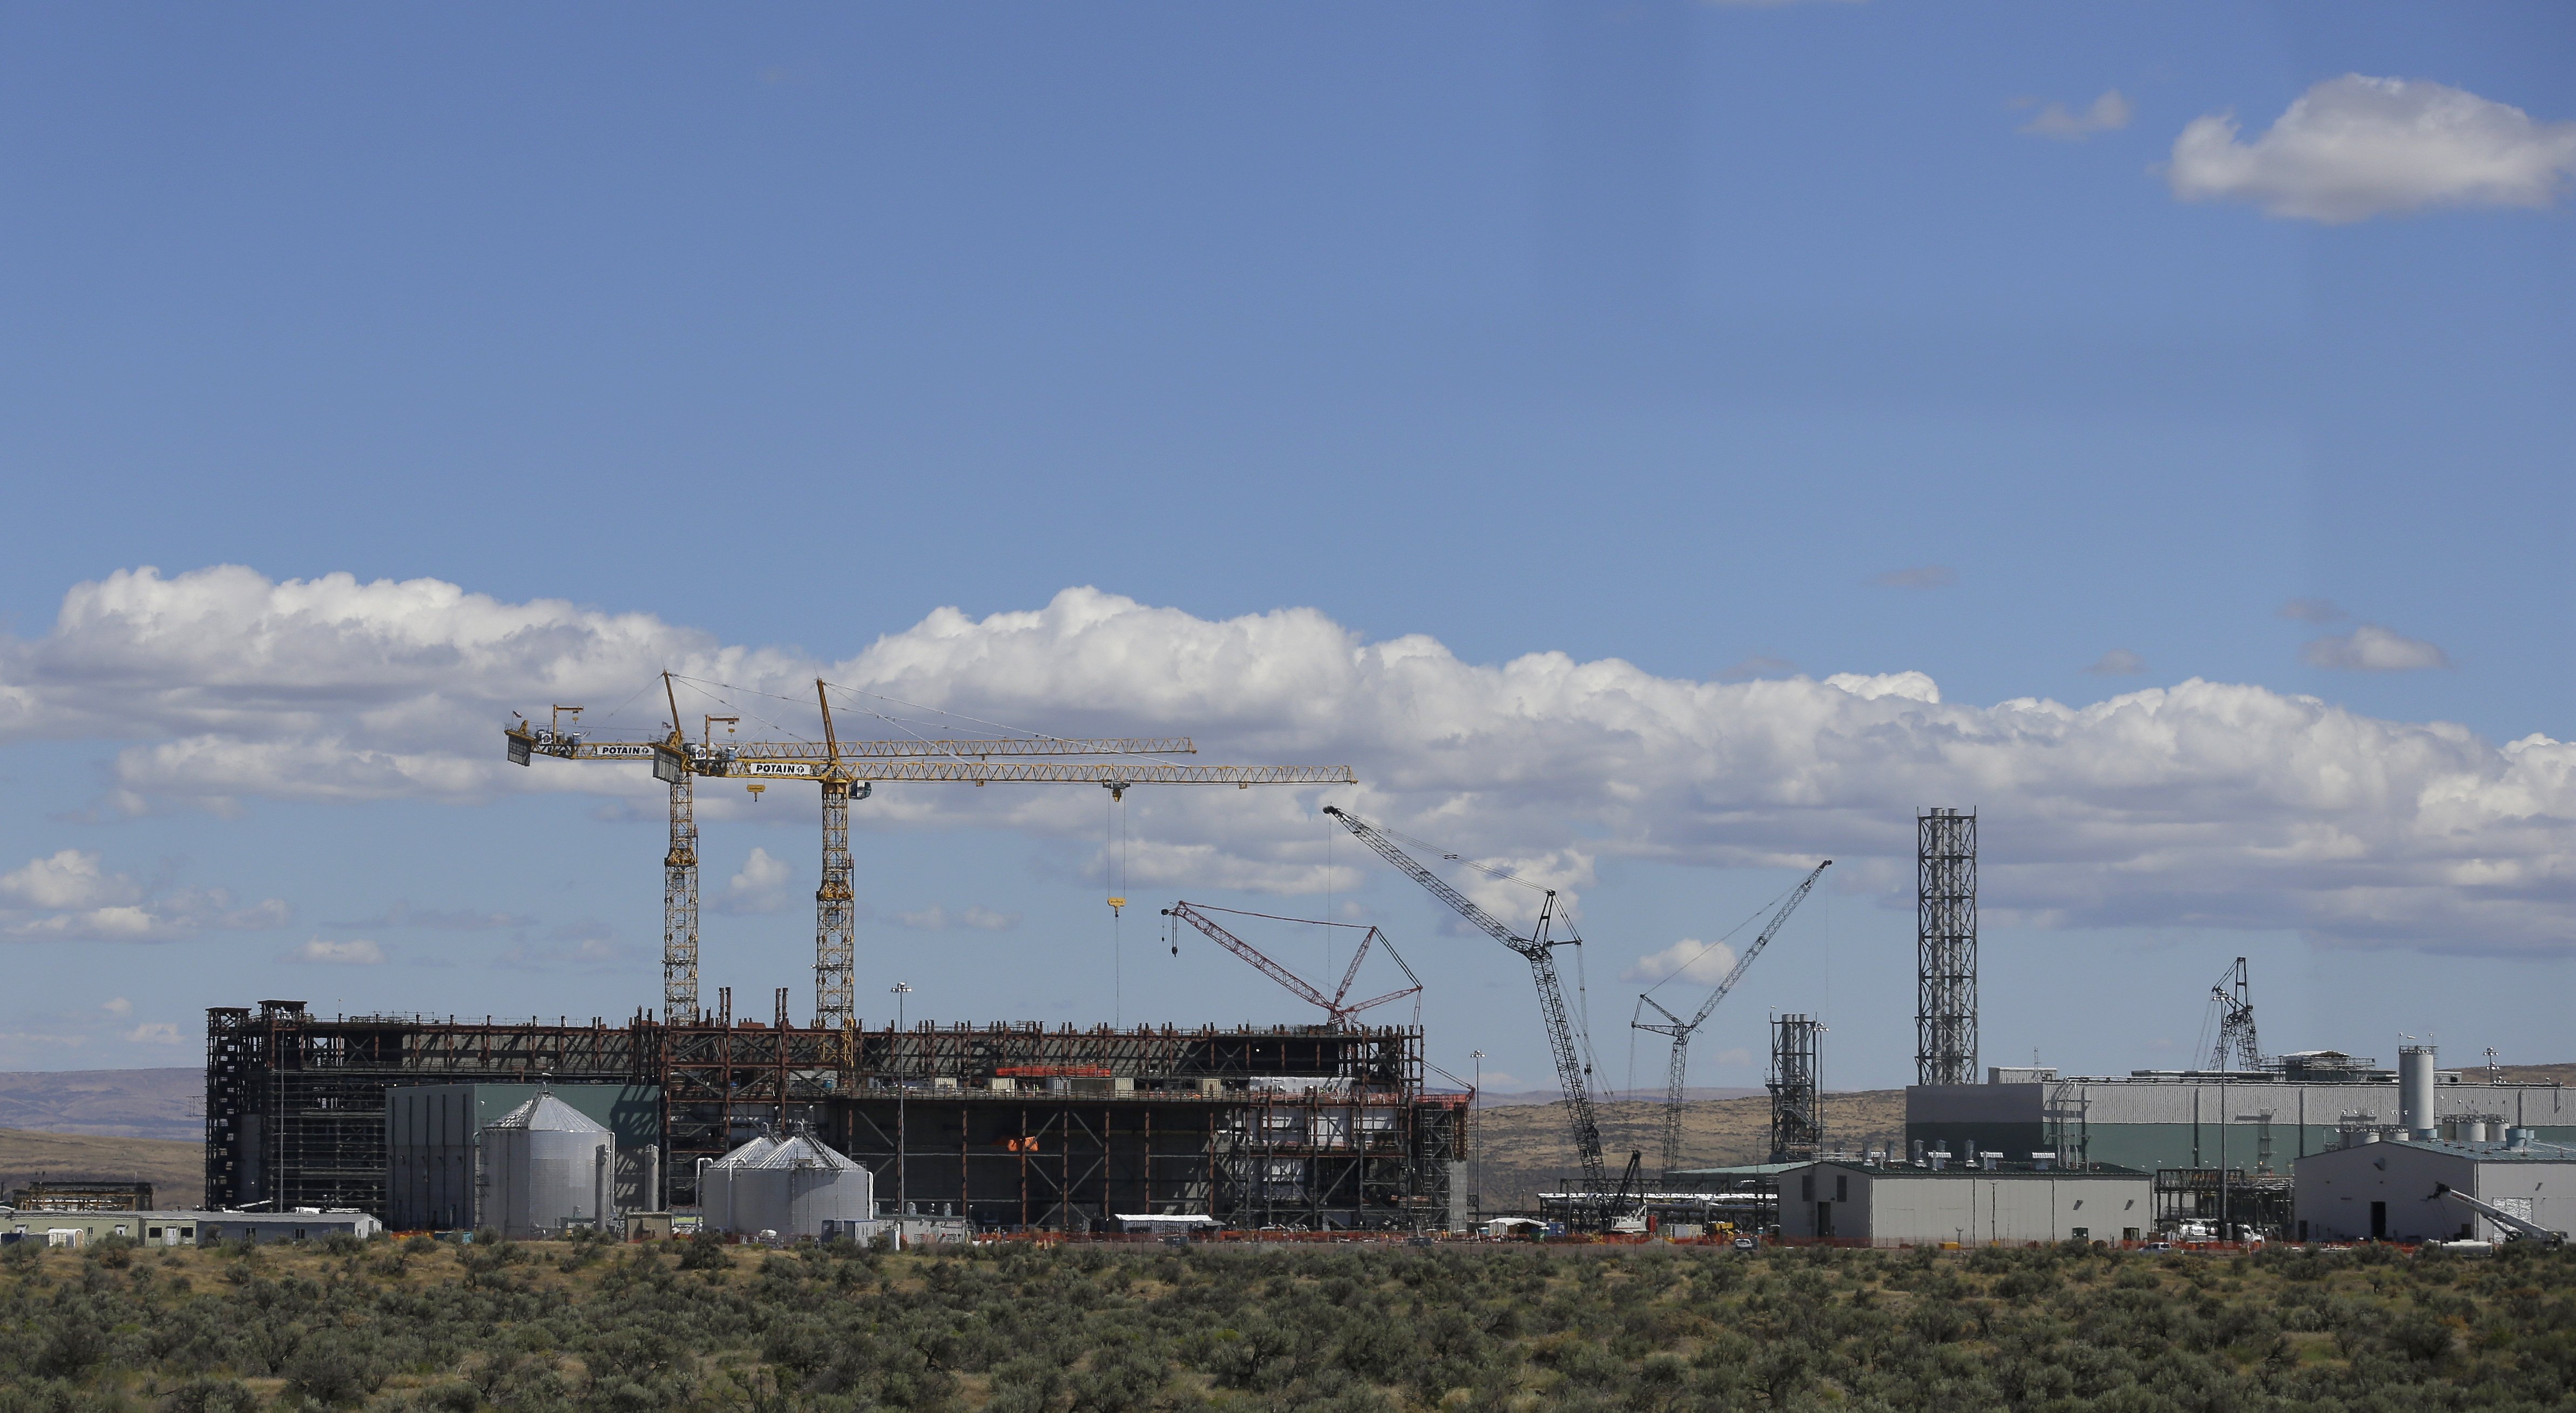 Hanford Nuclear Waste-1 In this photo taken July 11, 2016, cranes tower above a waste treatment plant under construction on the Hanford Nuclear Reservation near Richland, Wash. The U.S. Energy Department's top official at Washington state's severely contaminated nuclear reservation says future accidental nuclear radiation releases are likely because of aging site infrastructure and inadequate cleanup funding. Hundreds were evacuated May 9, 2017 when the roof of a 1950s rail tunnel storing a lethal mix of waste from plutonium production collapsed. Tests show no radiation was released. (AP Photo/Ted S. Warren)